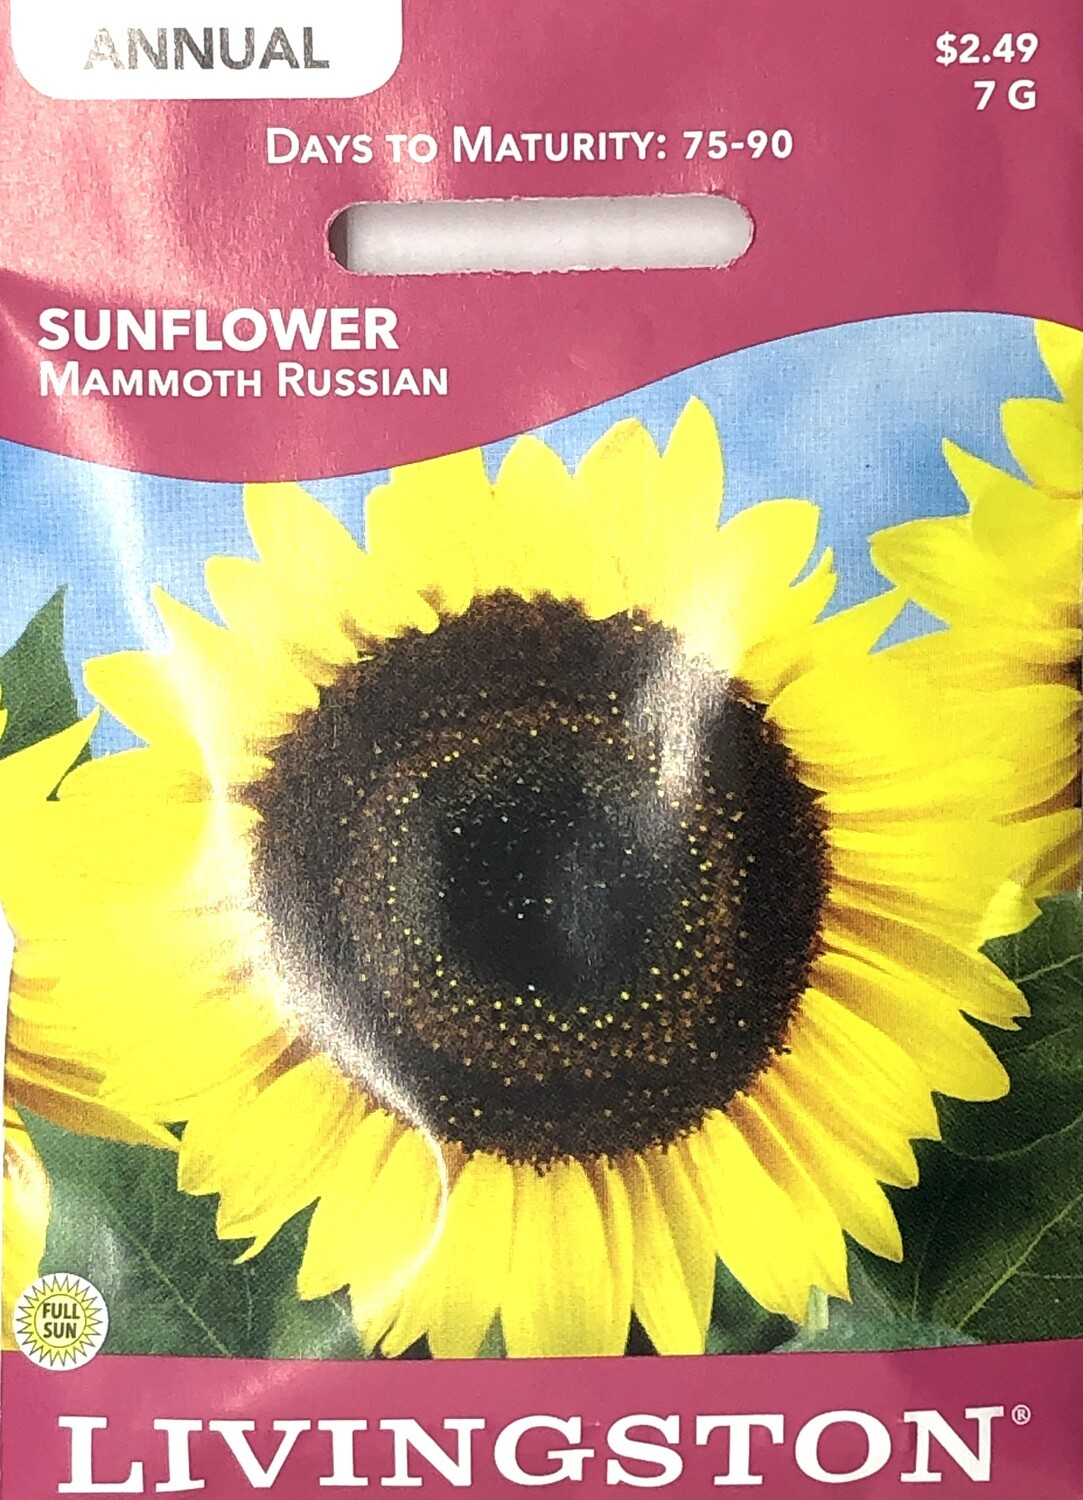 SUNFLOWER - MAMMOTH RUSSIAN